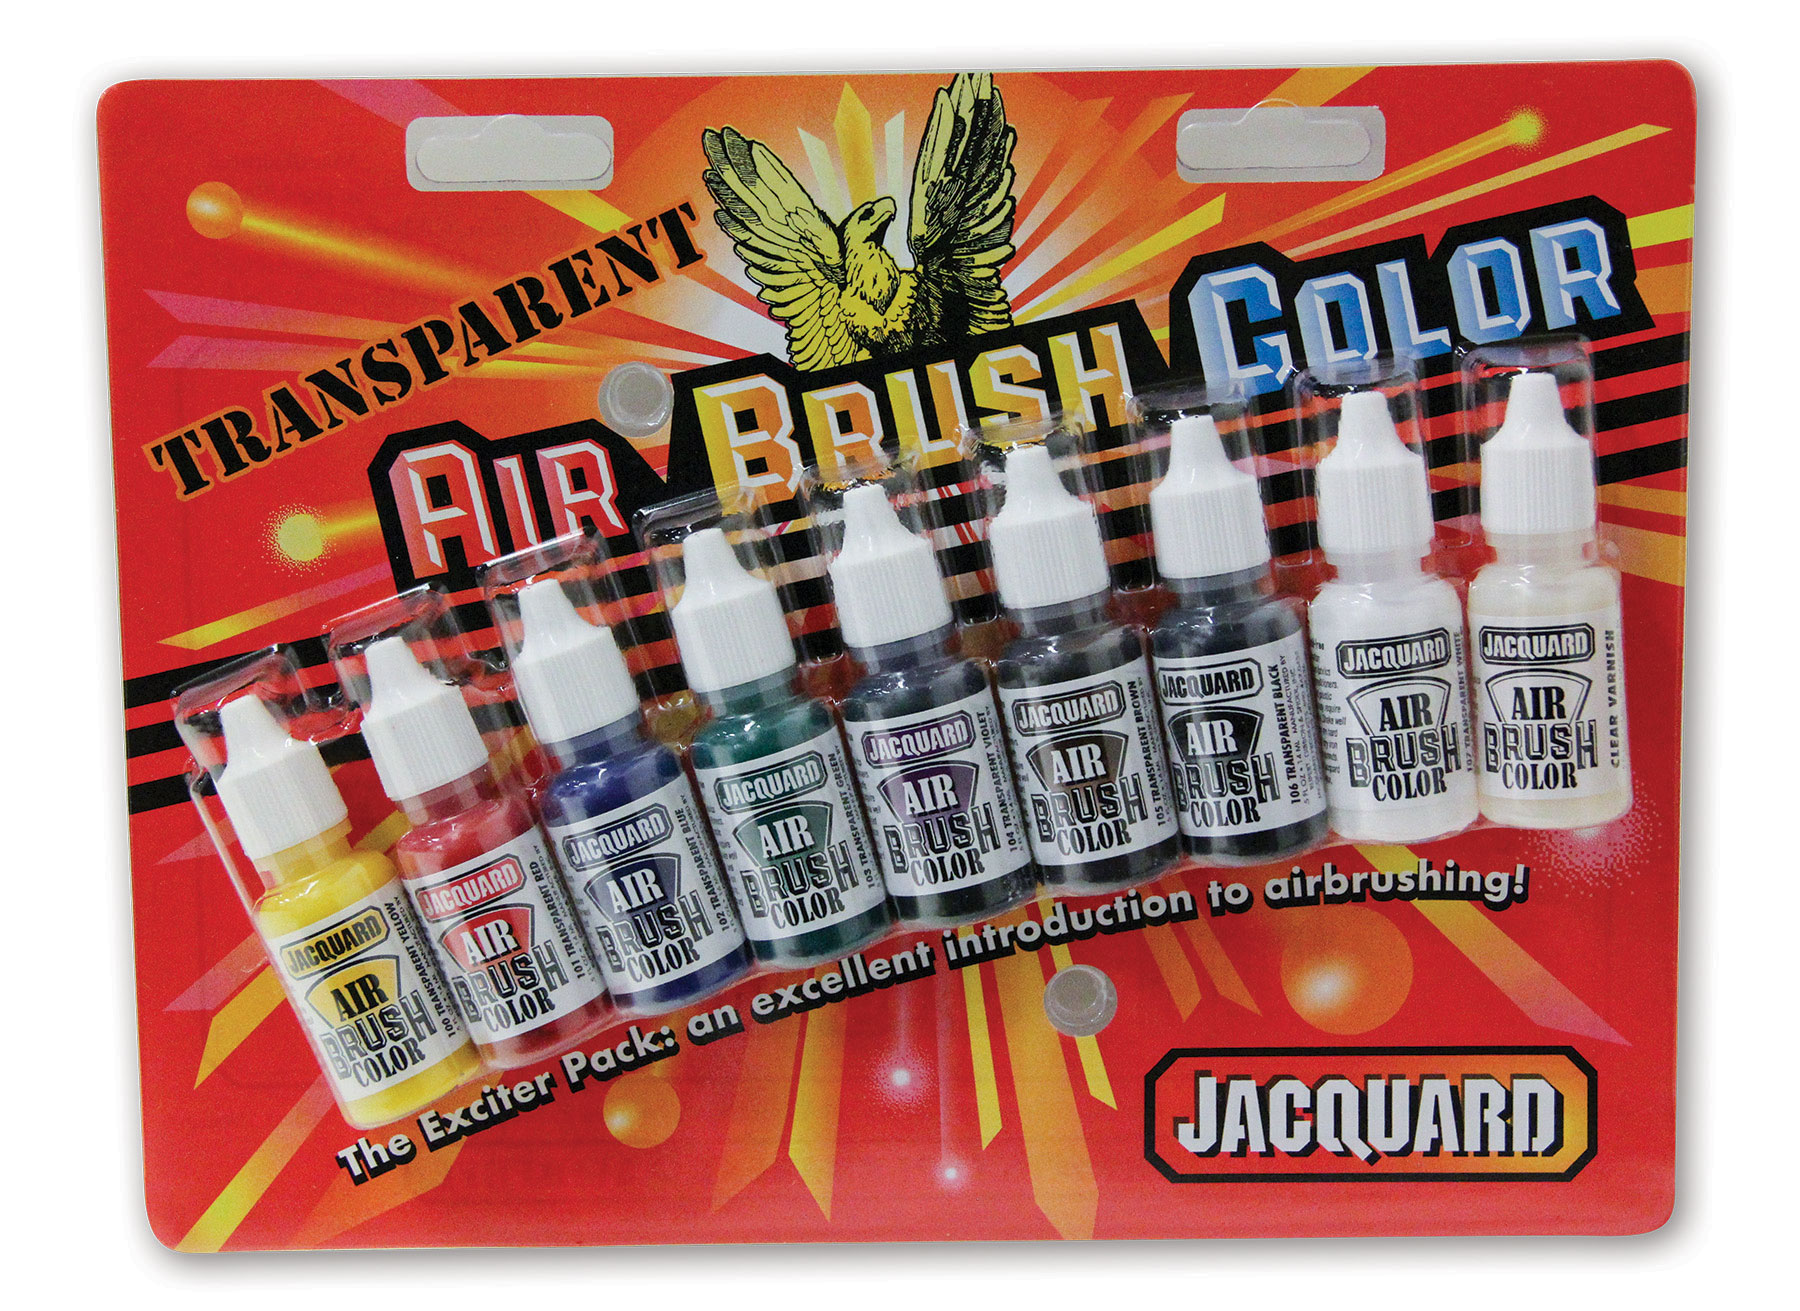 Jacquard Transparent Airbrush Exciter Pack